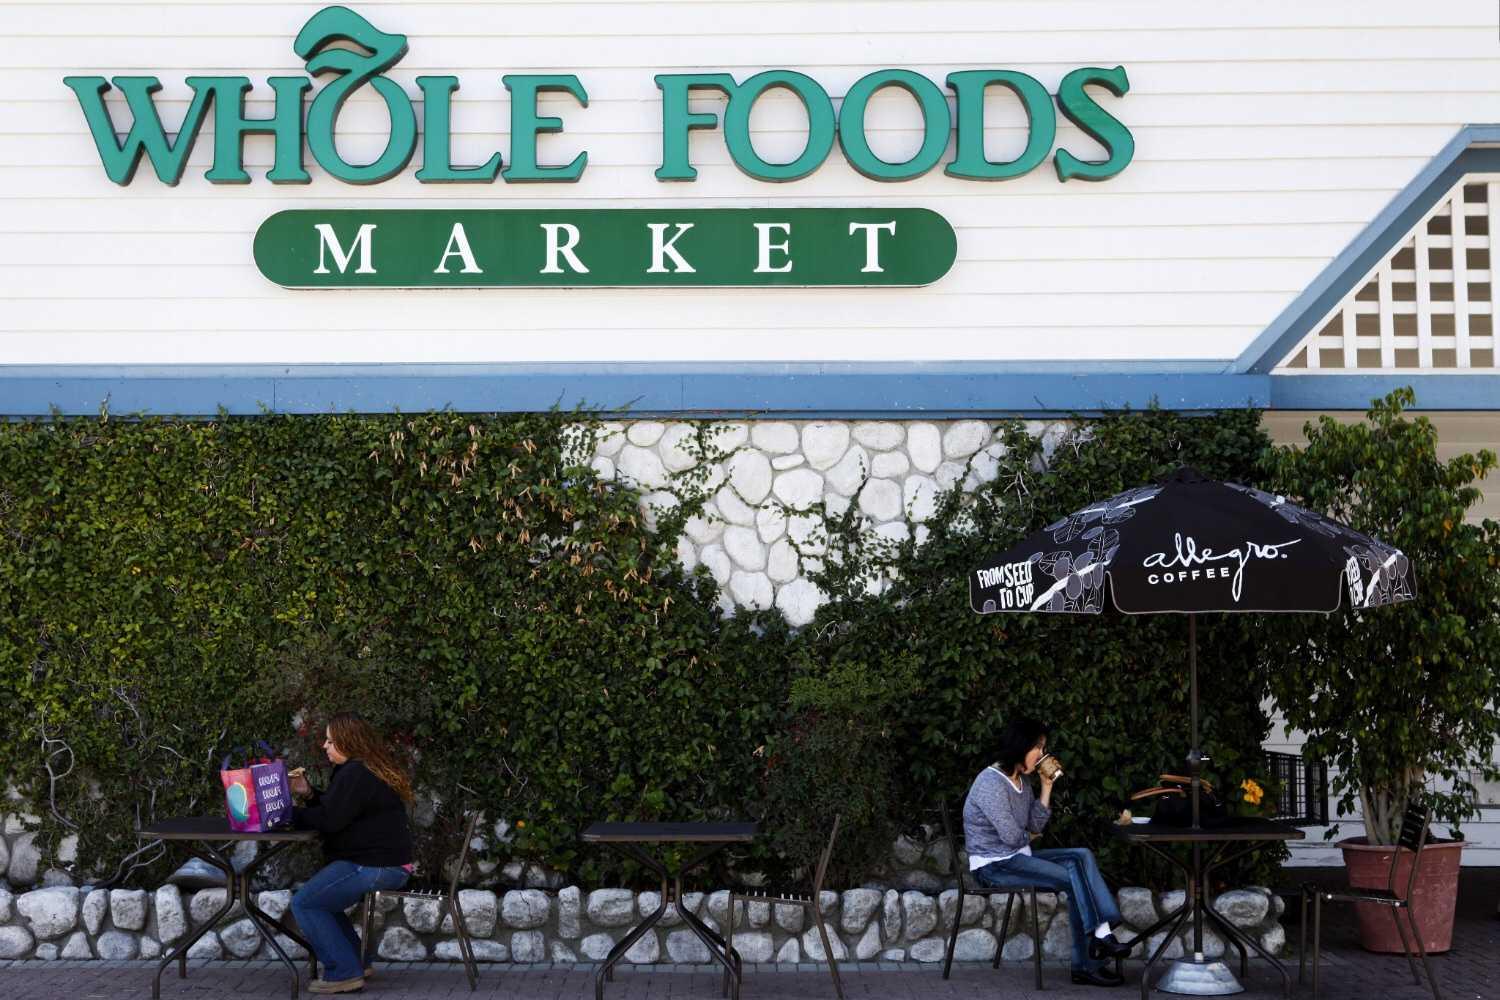 A Whole Foods Market in Redondo Beach, Calif. on November 5, 2013.